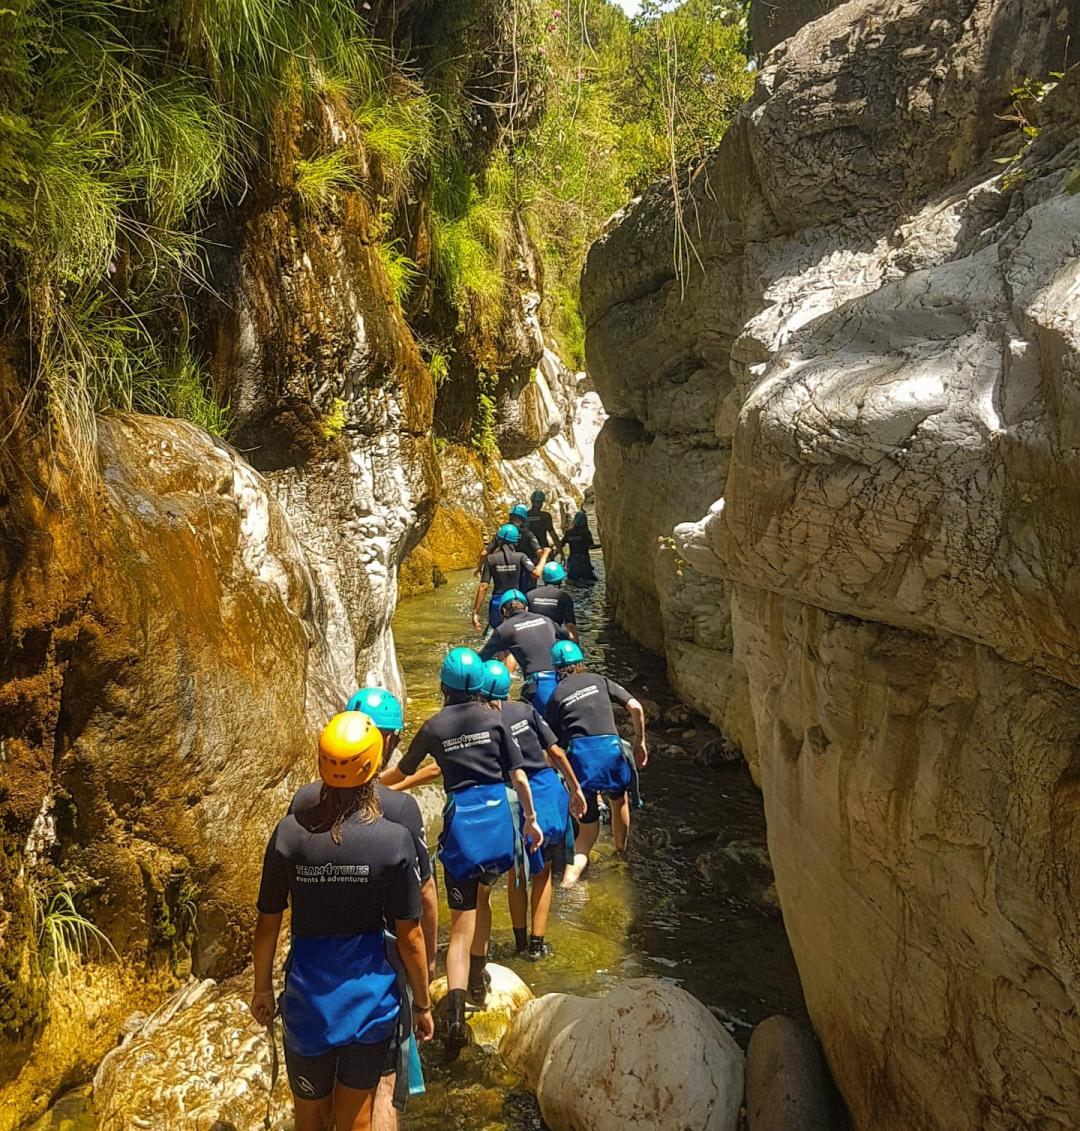 CANYONING LEVEL 1 Canyon descent through waterfall and natural waterslides 08 | Marbella Team4you